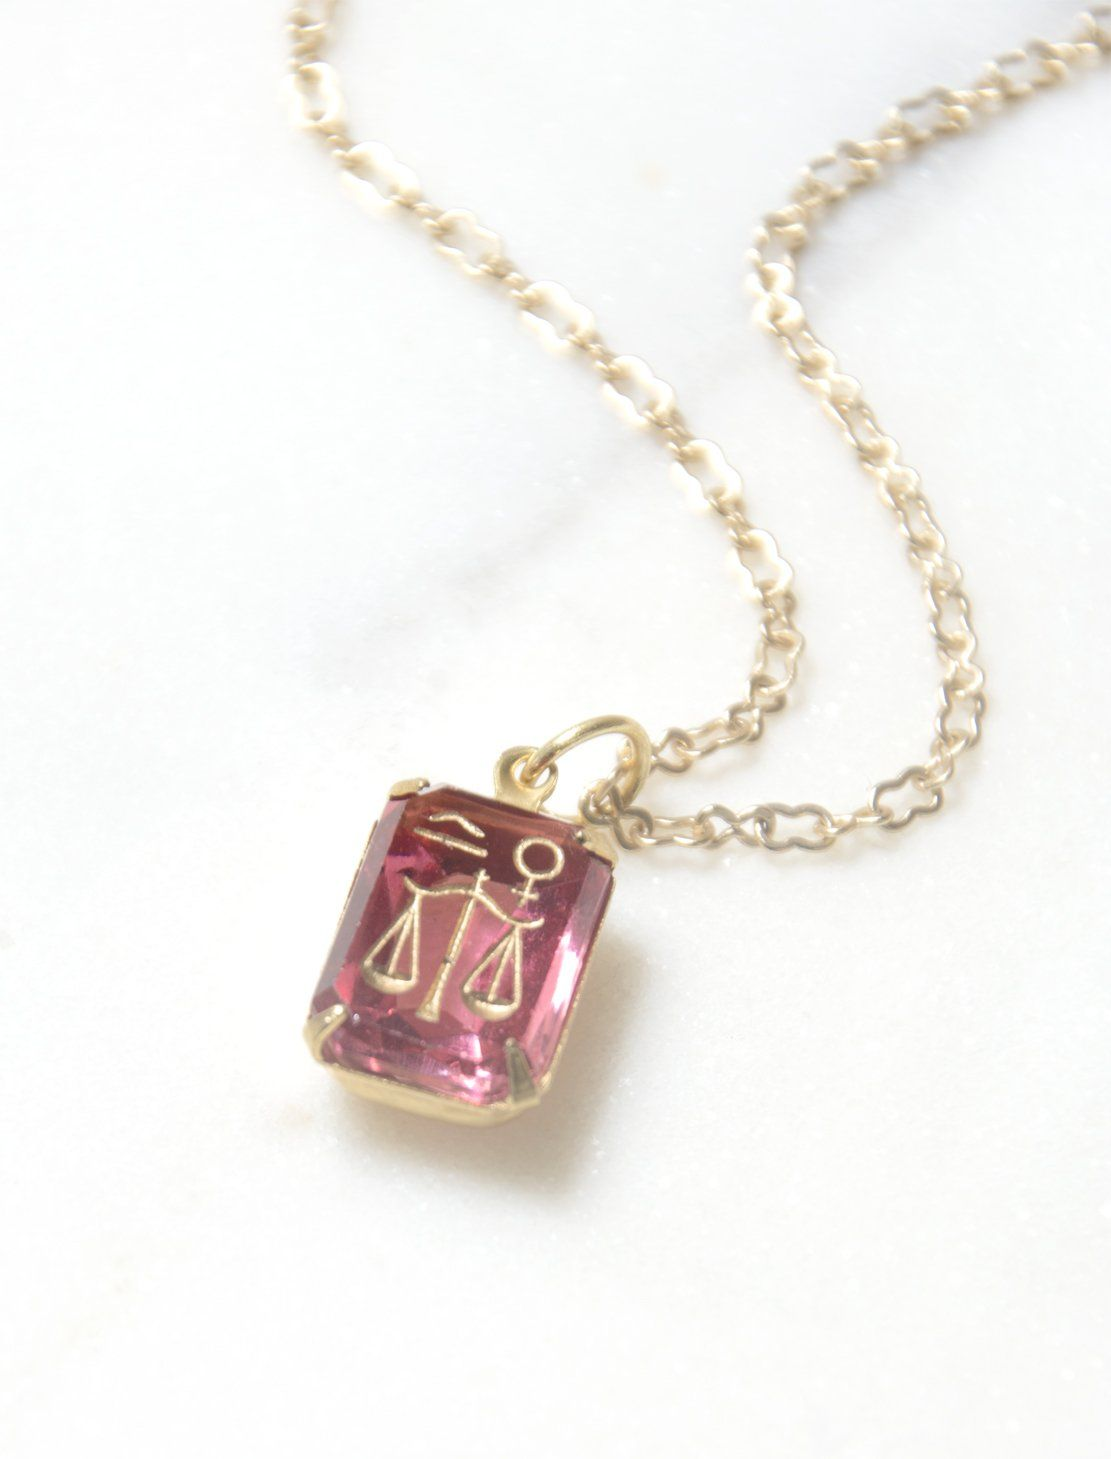 S libra intaglio glass pendant necklace glass pendants